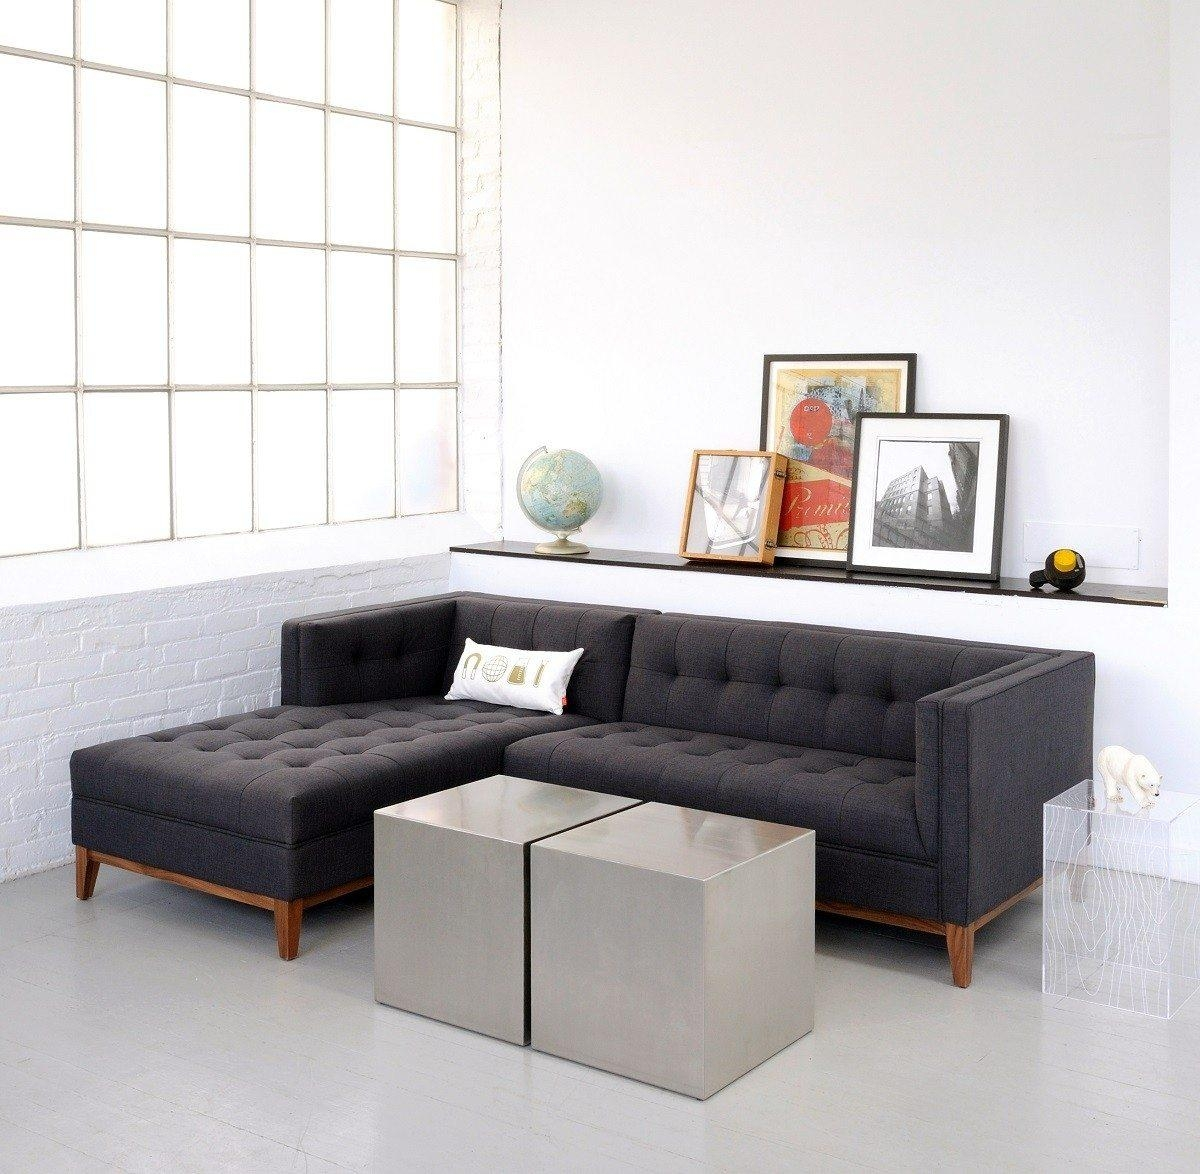 Short Sectional Sofa With Design Hd Photos 31263 | Kengire Pertaining To Short Sectional Sofas (Image 18 of 20)